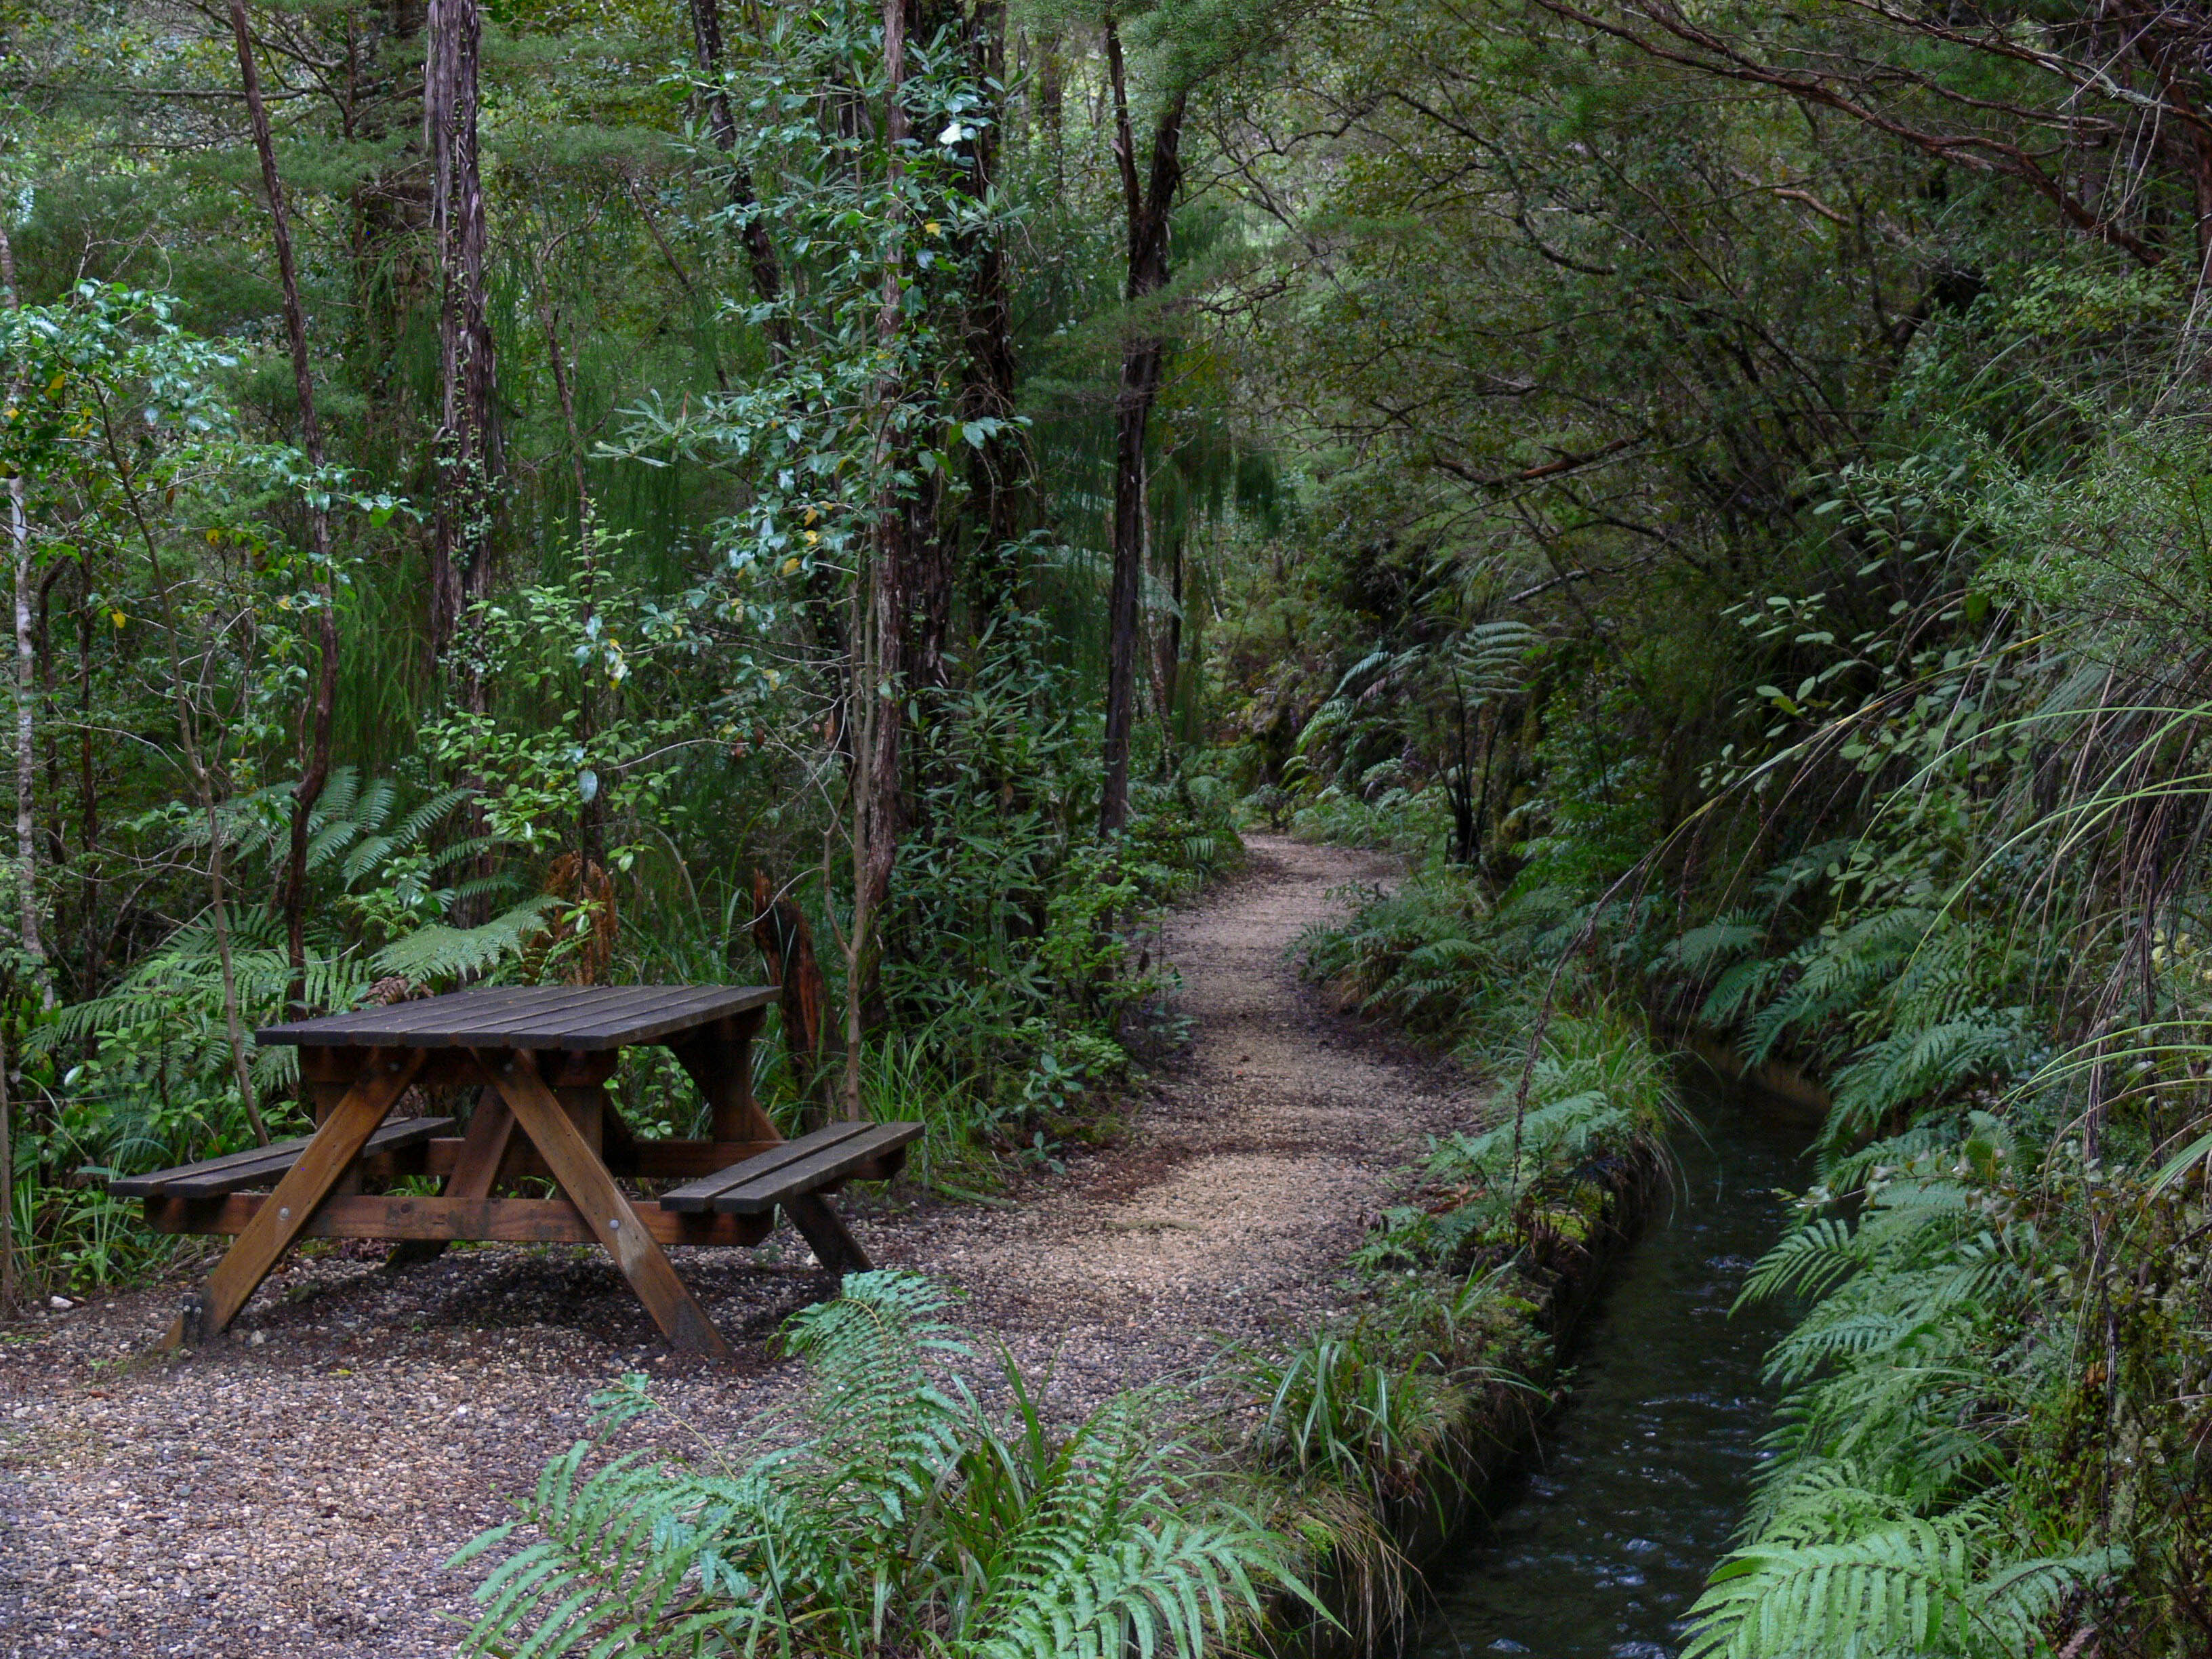 Picnic Table at Pupu Hydro Walkway